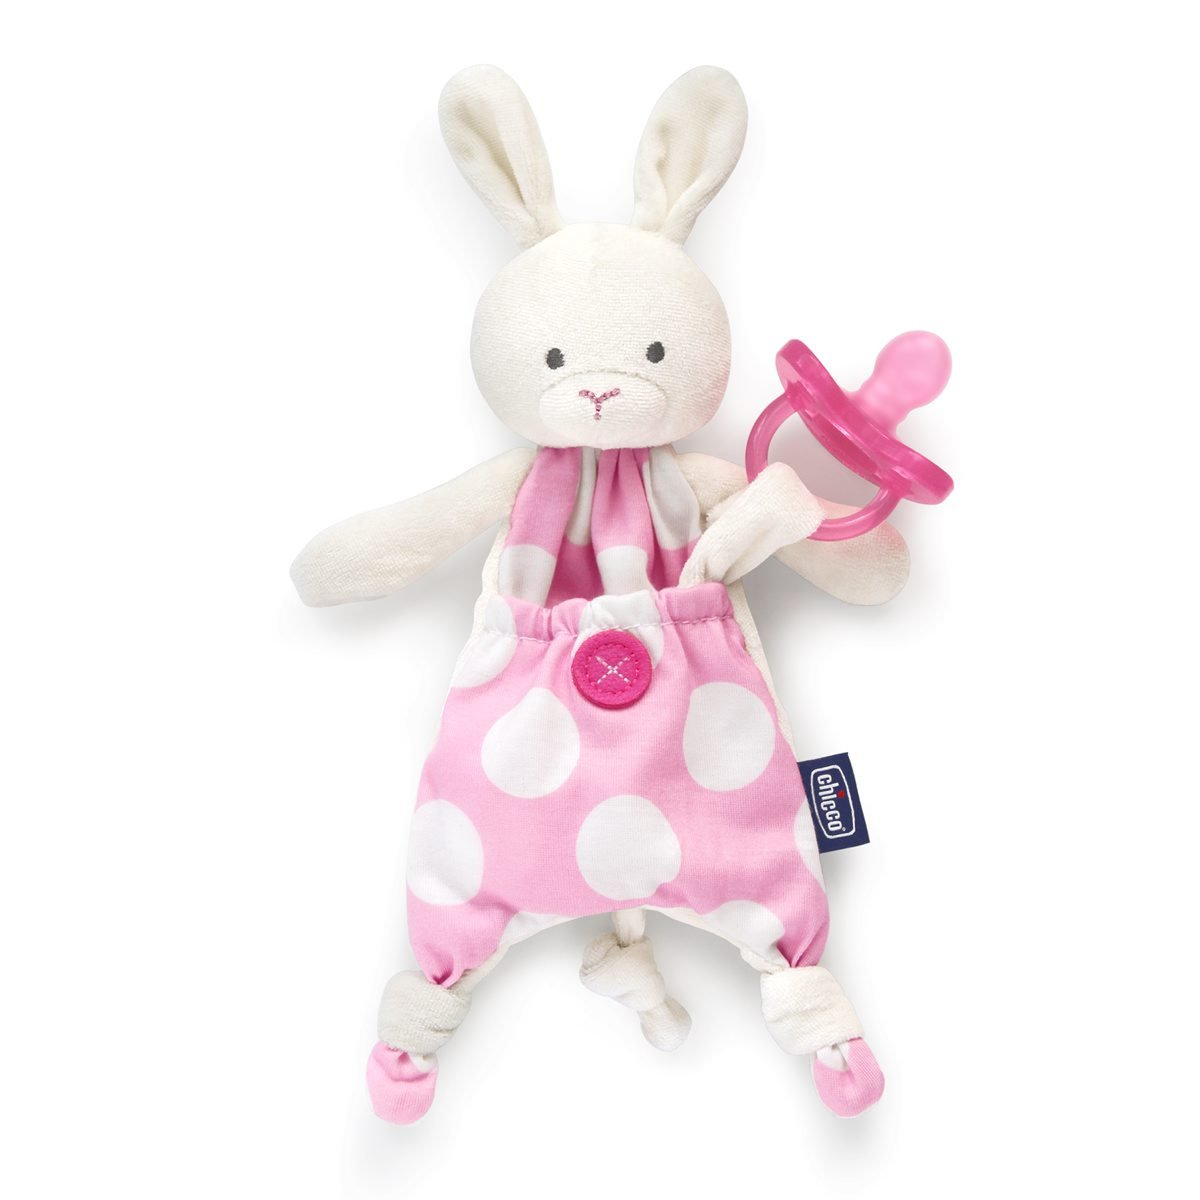 Chicco Pocket Friend - Guarda chupetes de peluche con bolsillo, rosa